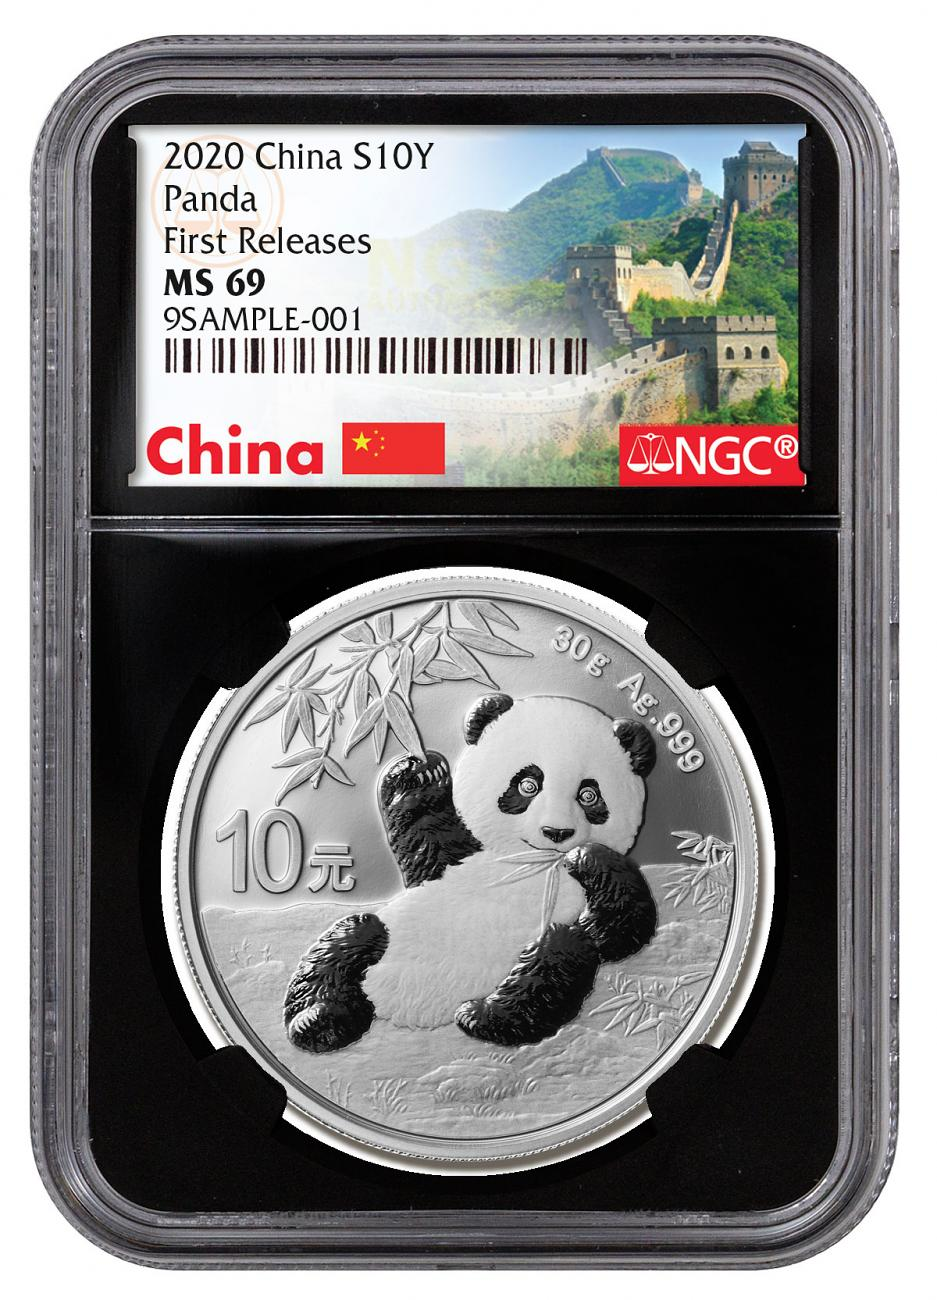 2020 China 30 g Silver Panda ¥10 Coin NGC MS69 FR Black Core Holder Great Wall Label